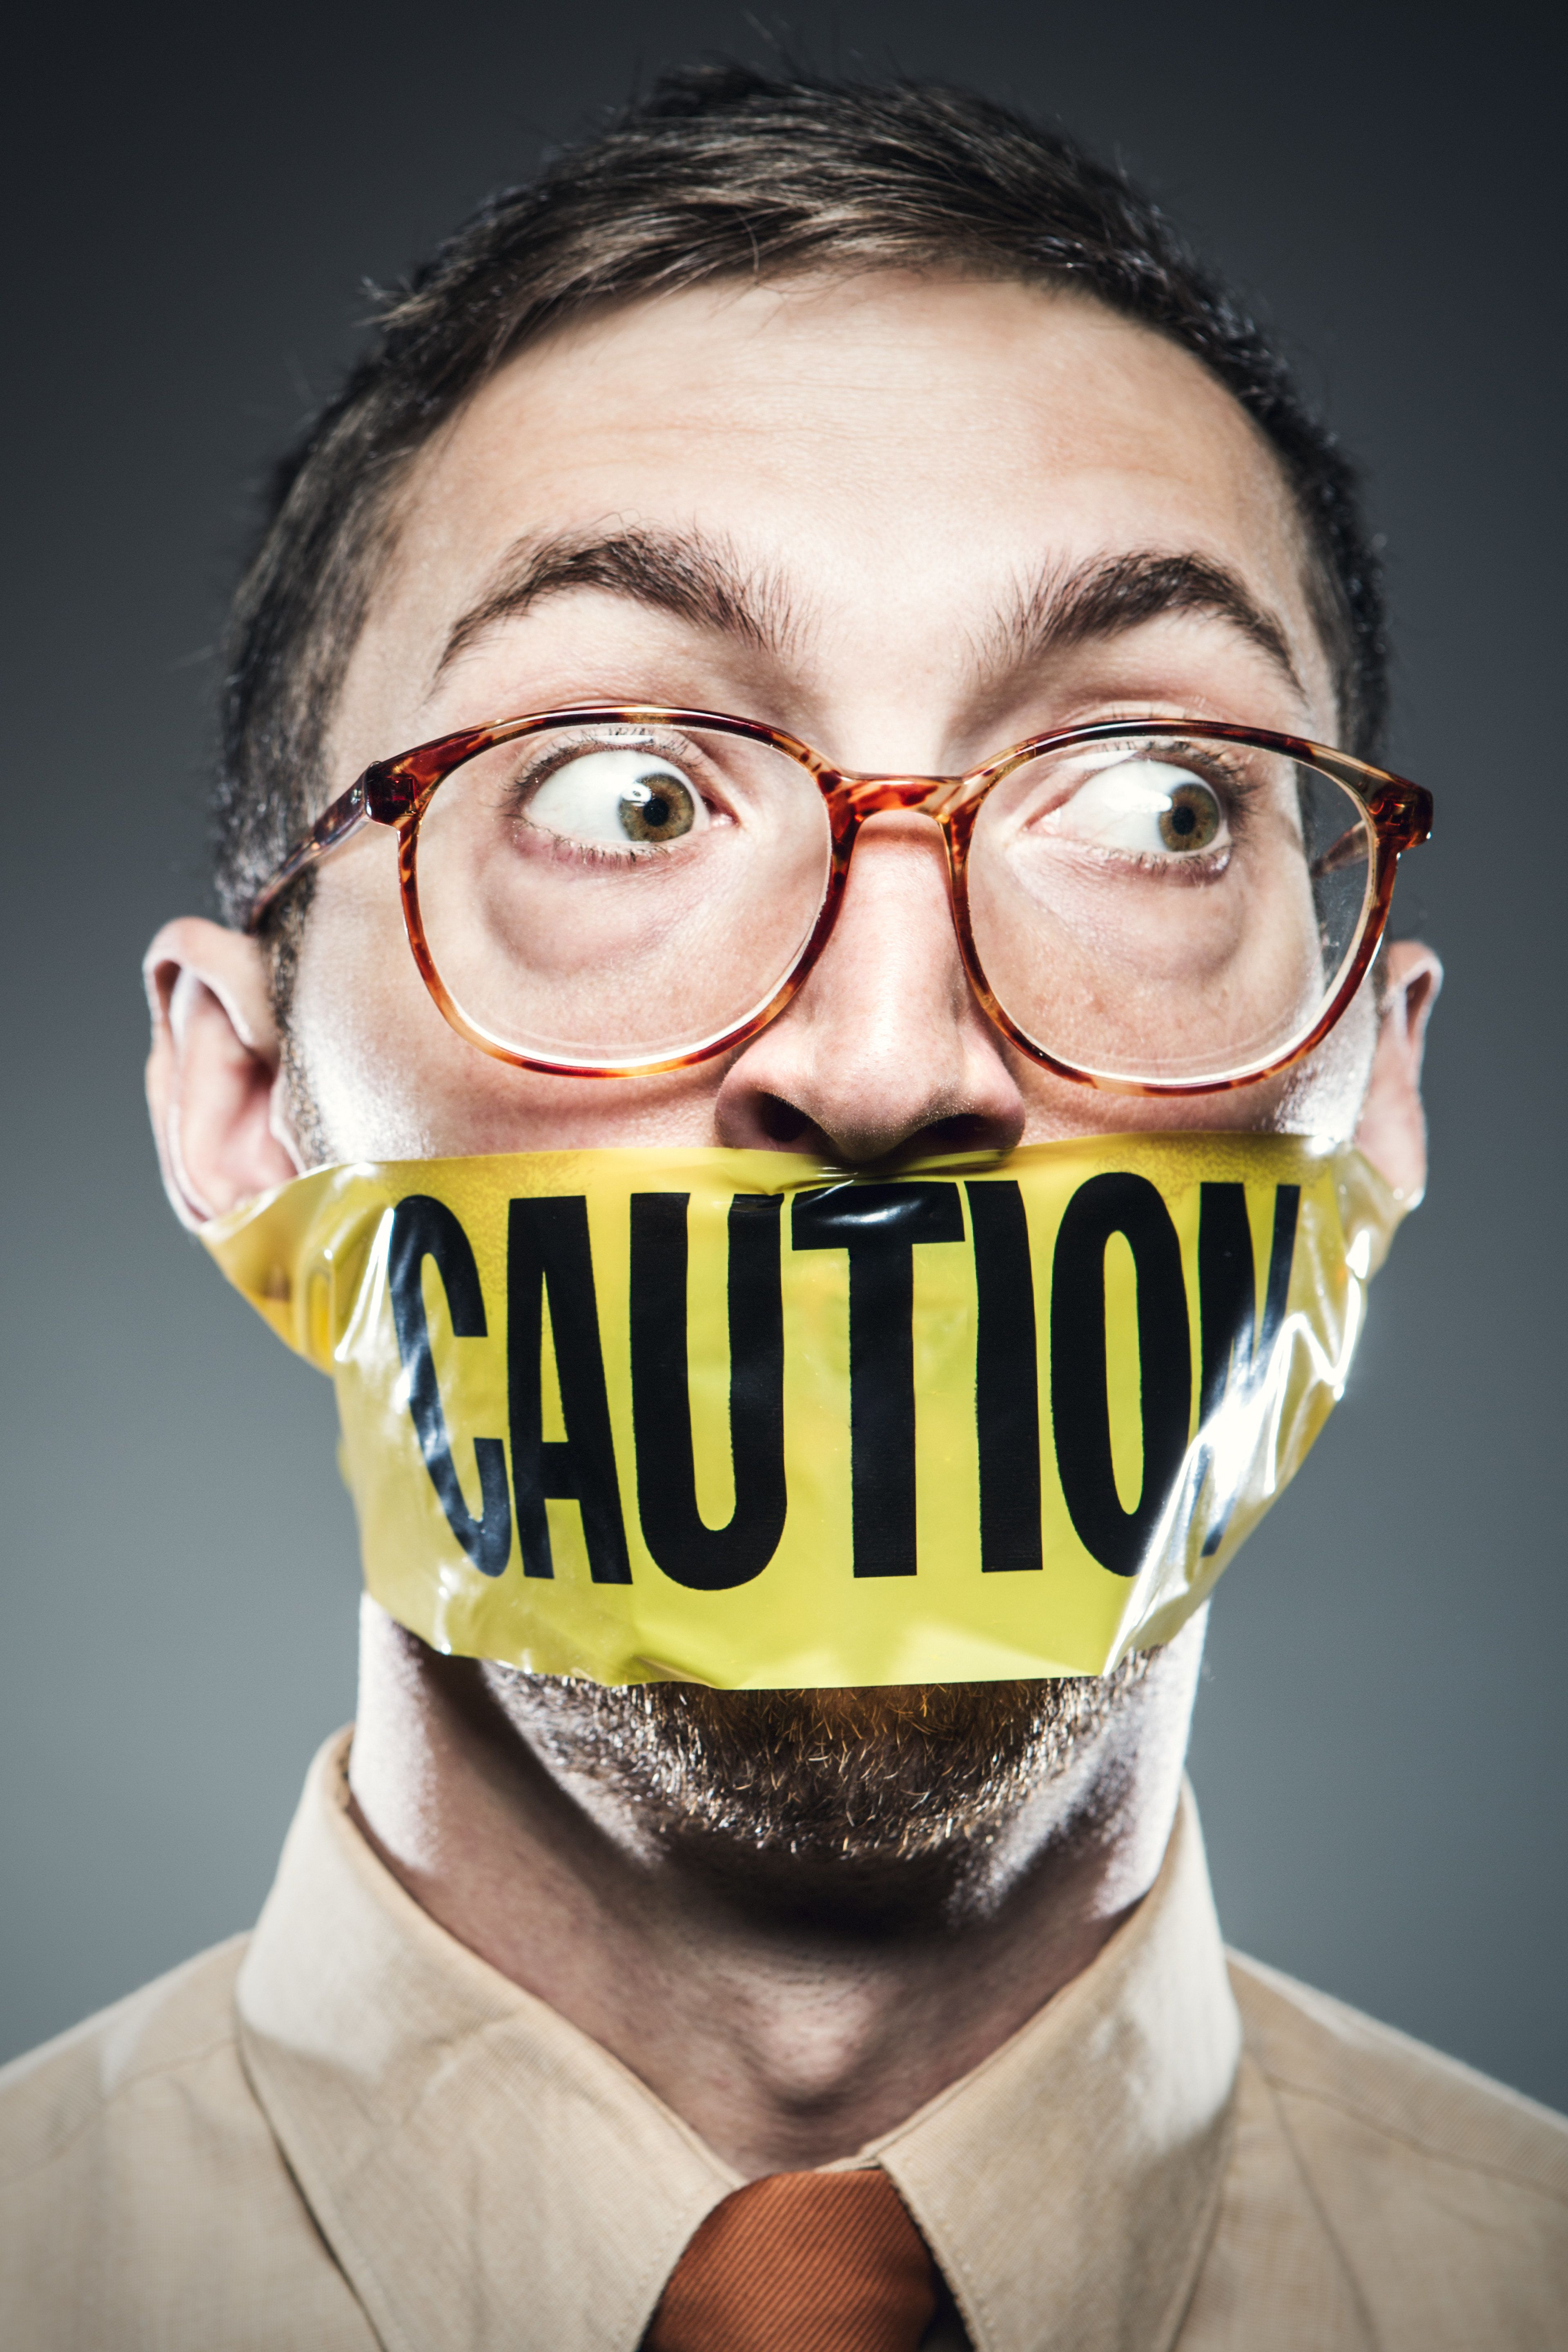 A man has yellow Caution tape wrapped over his mouth, preventing him from speaking his thoughts or ideas.  Concept on freedom of speech and censoring of opinions.